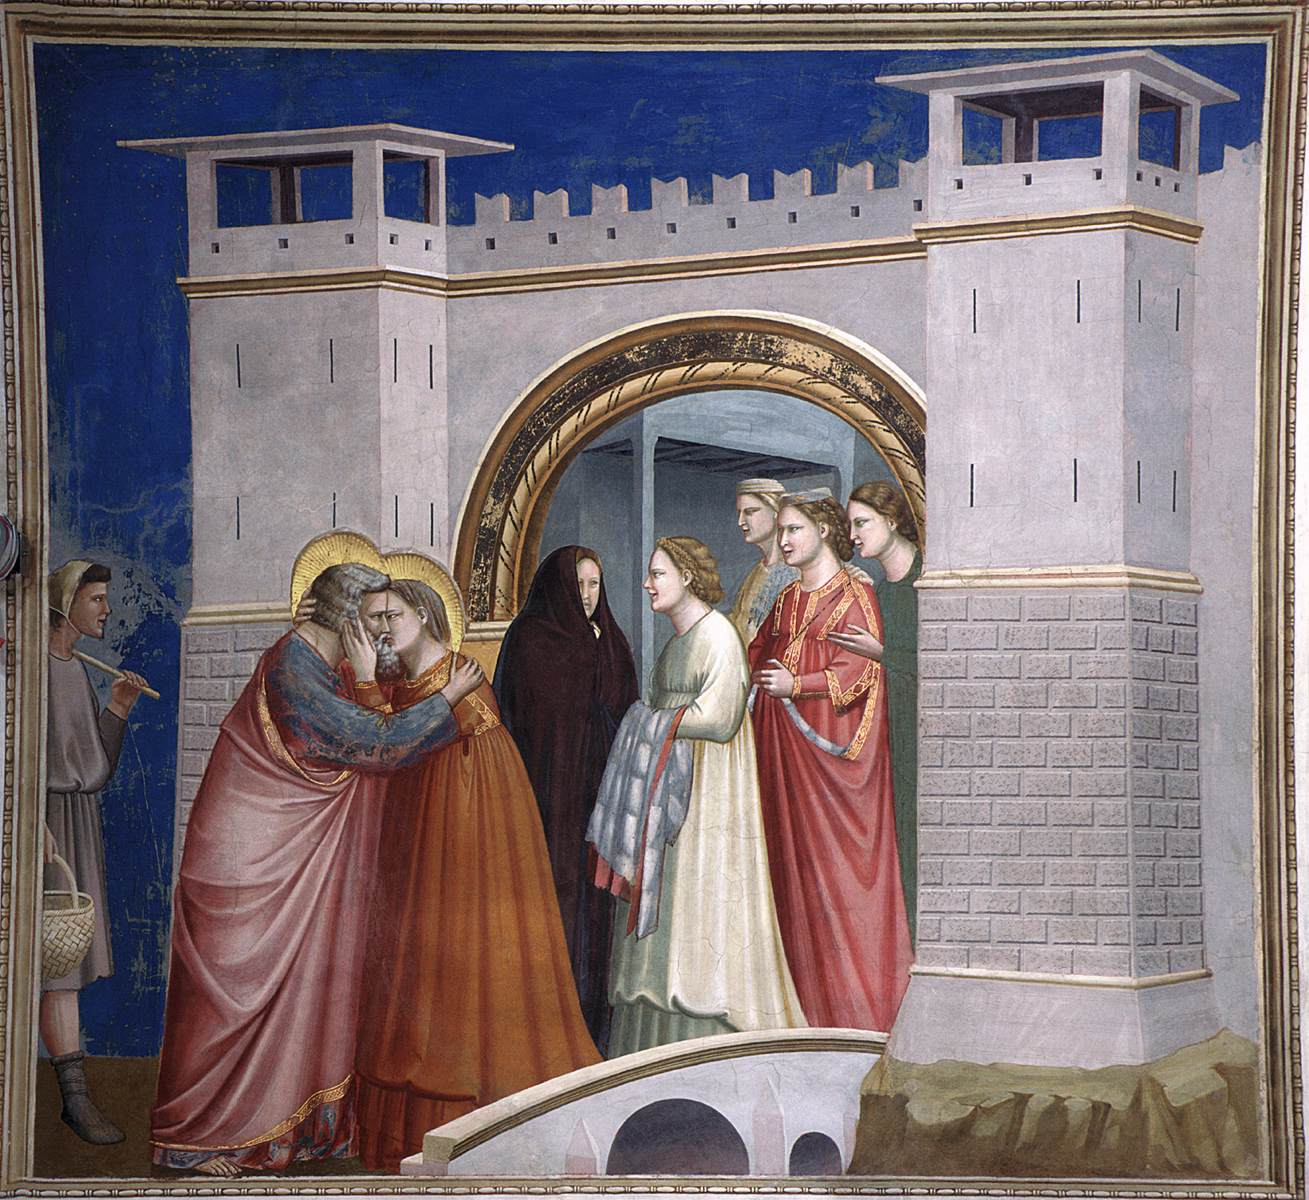 Fresco cycle in the Arena Chapel by GIOTTO di Bondone